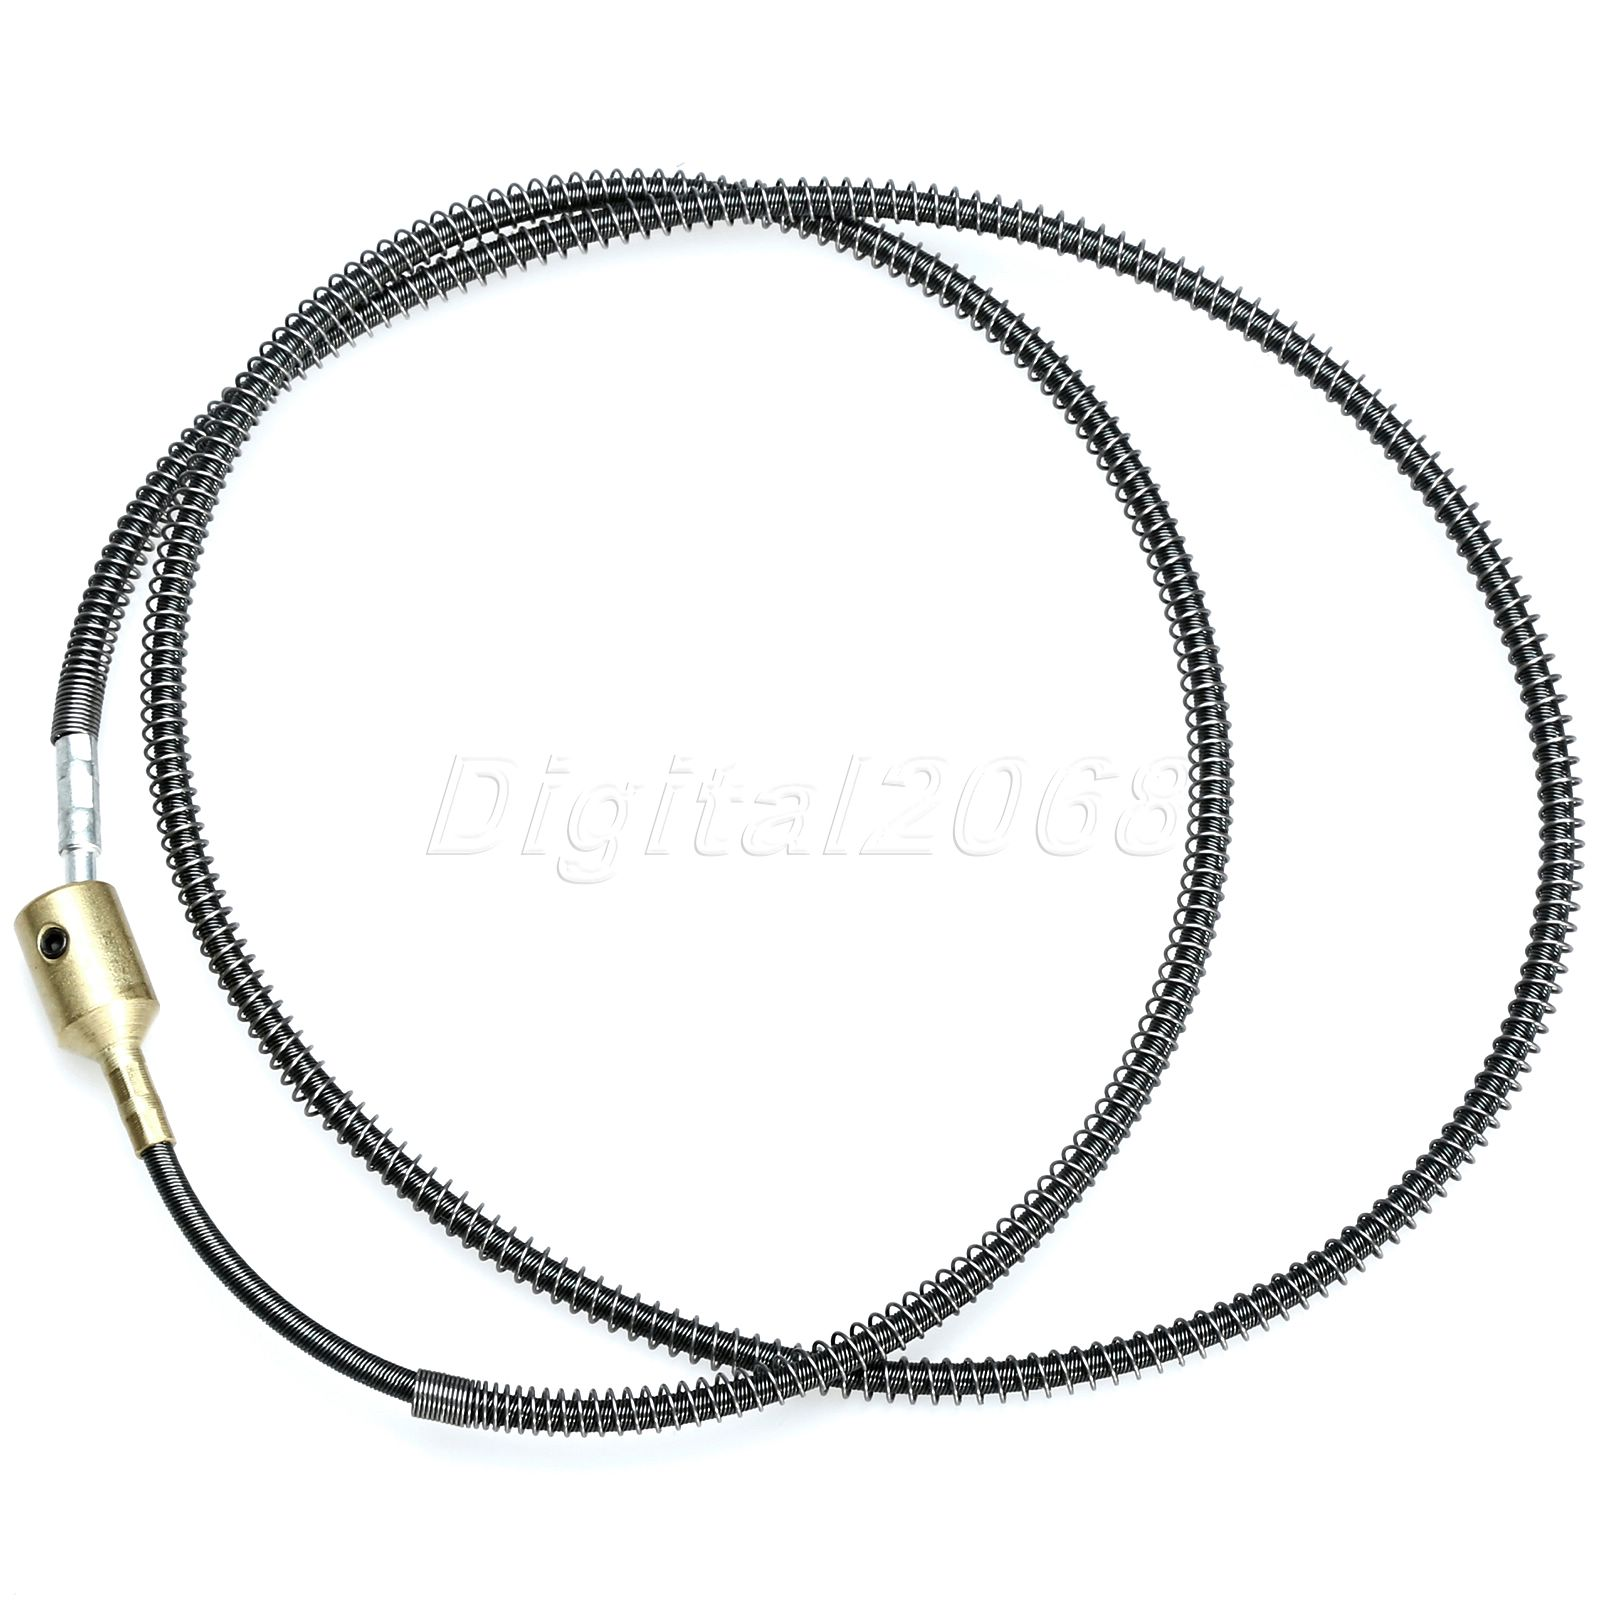 New Flexible Metal Inner Shaft Cable F/Flex Shaft For Foredom Flex Shaft Rotary Motor Tools колесные диски replica legeartis b123 8x18 5x120 d72 6 et30 s